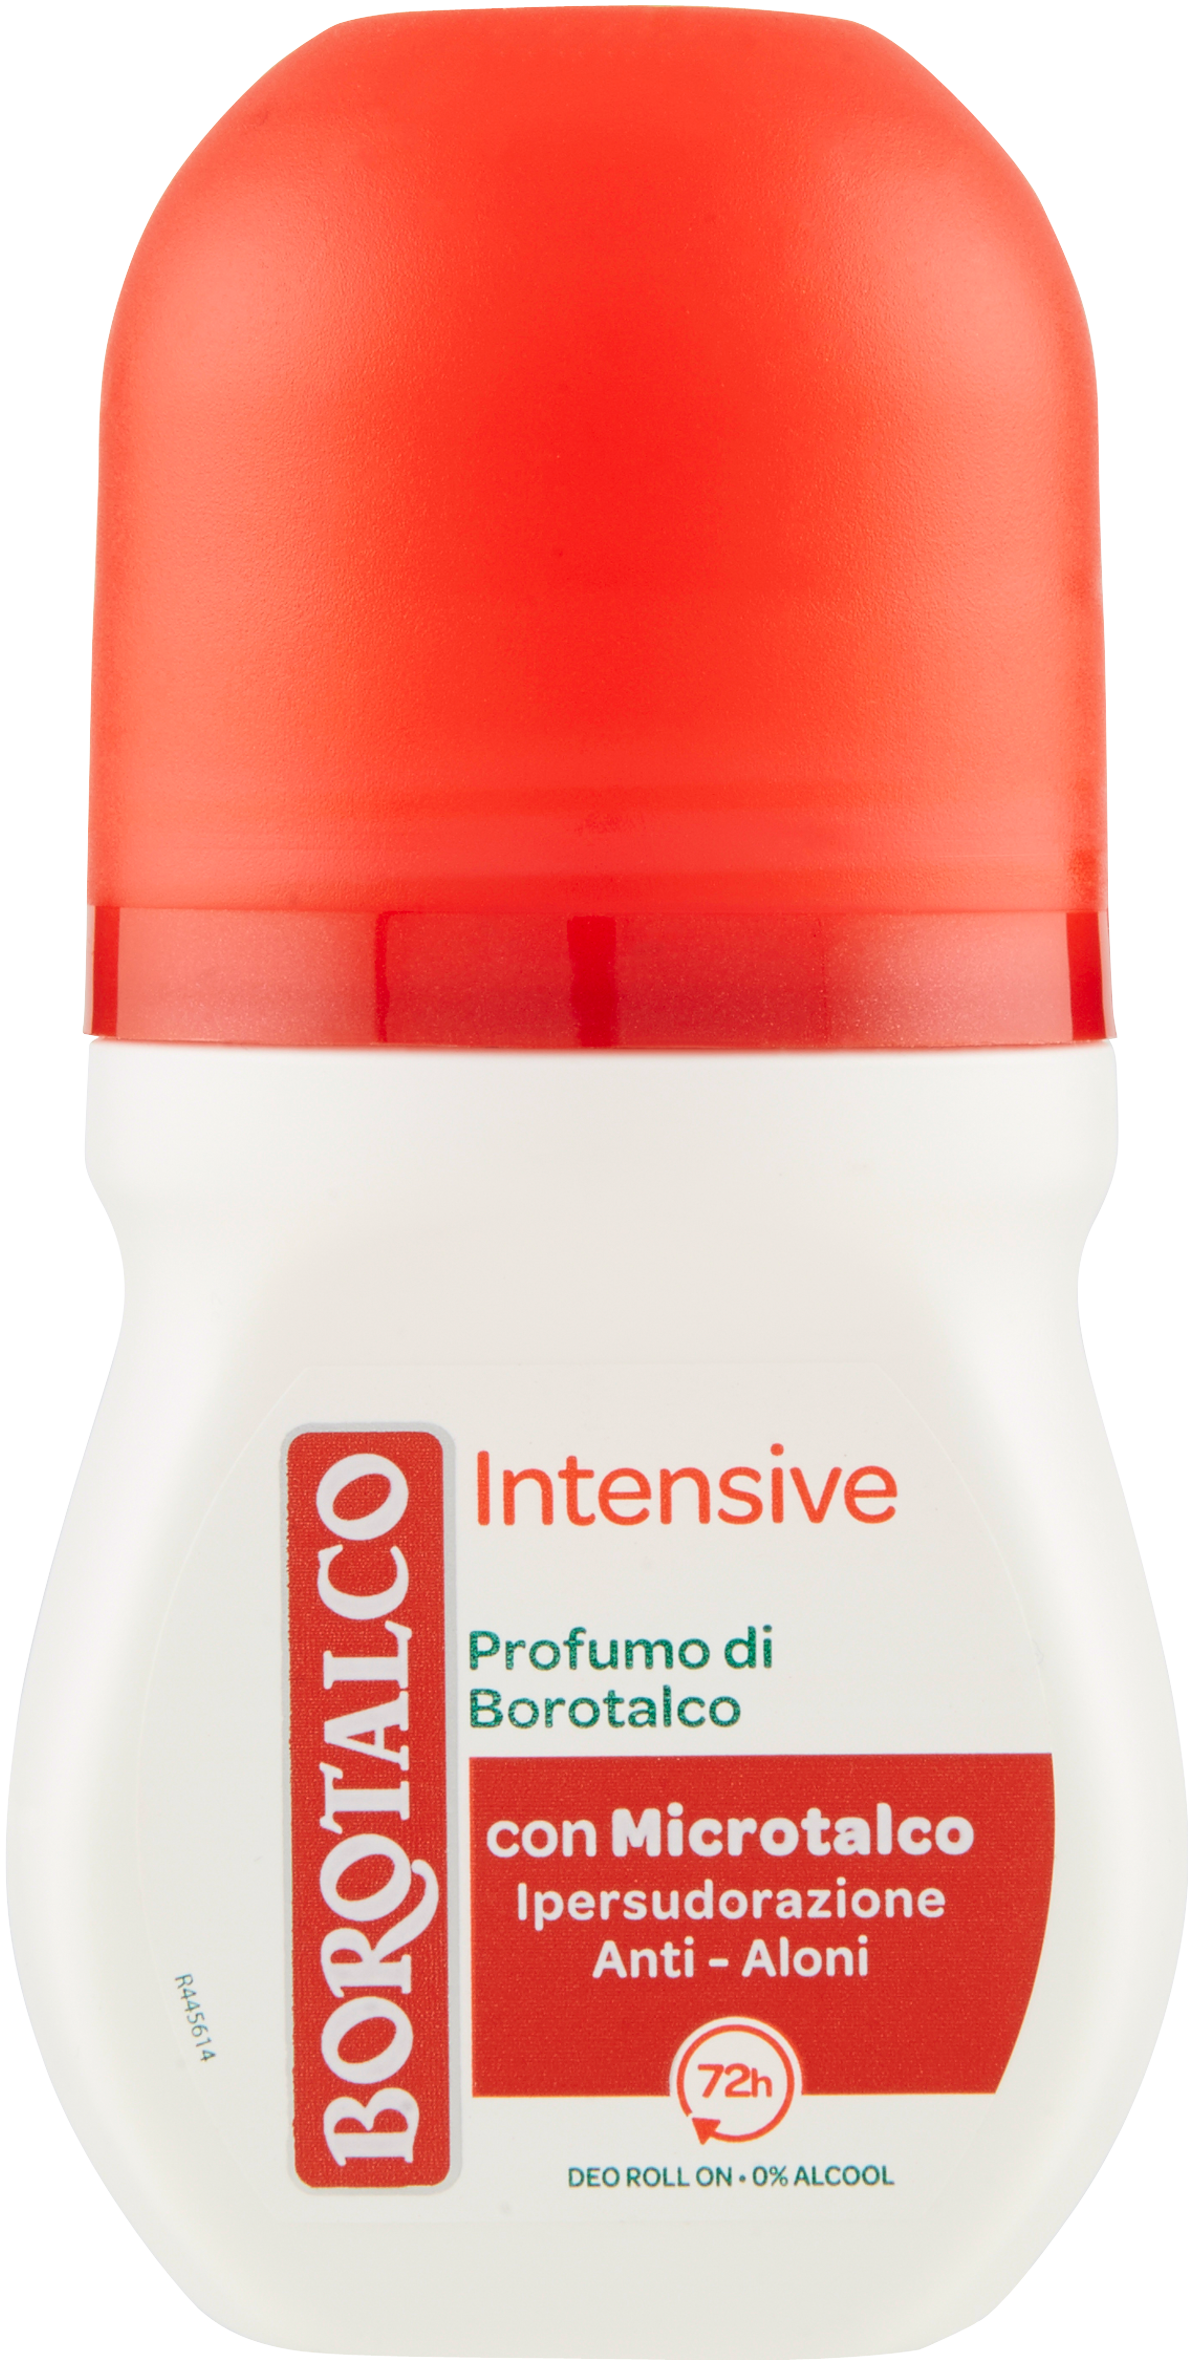 DEO ROLL ON BOROTALCO 50ML INTENSIVE